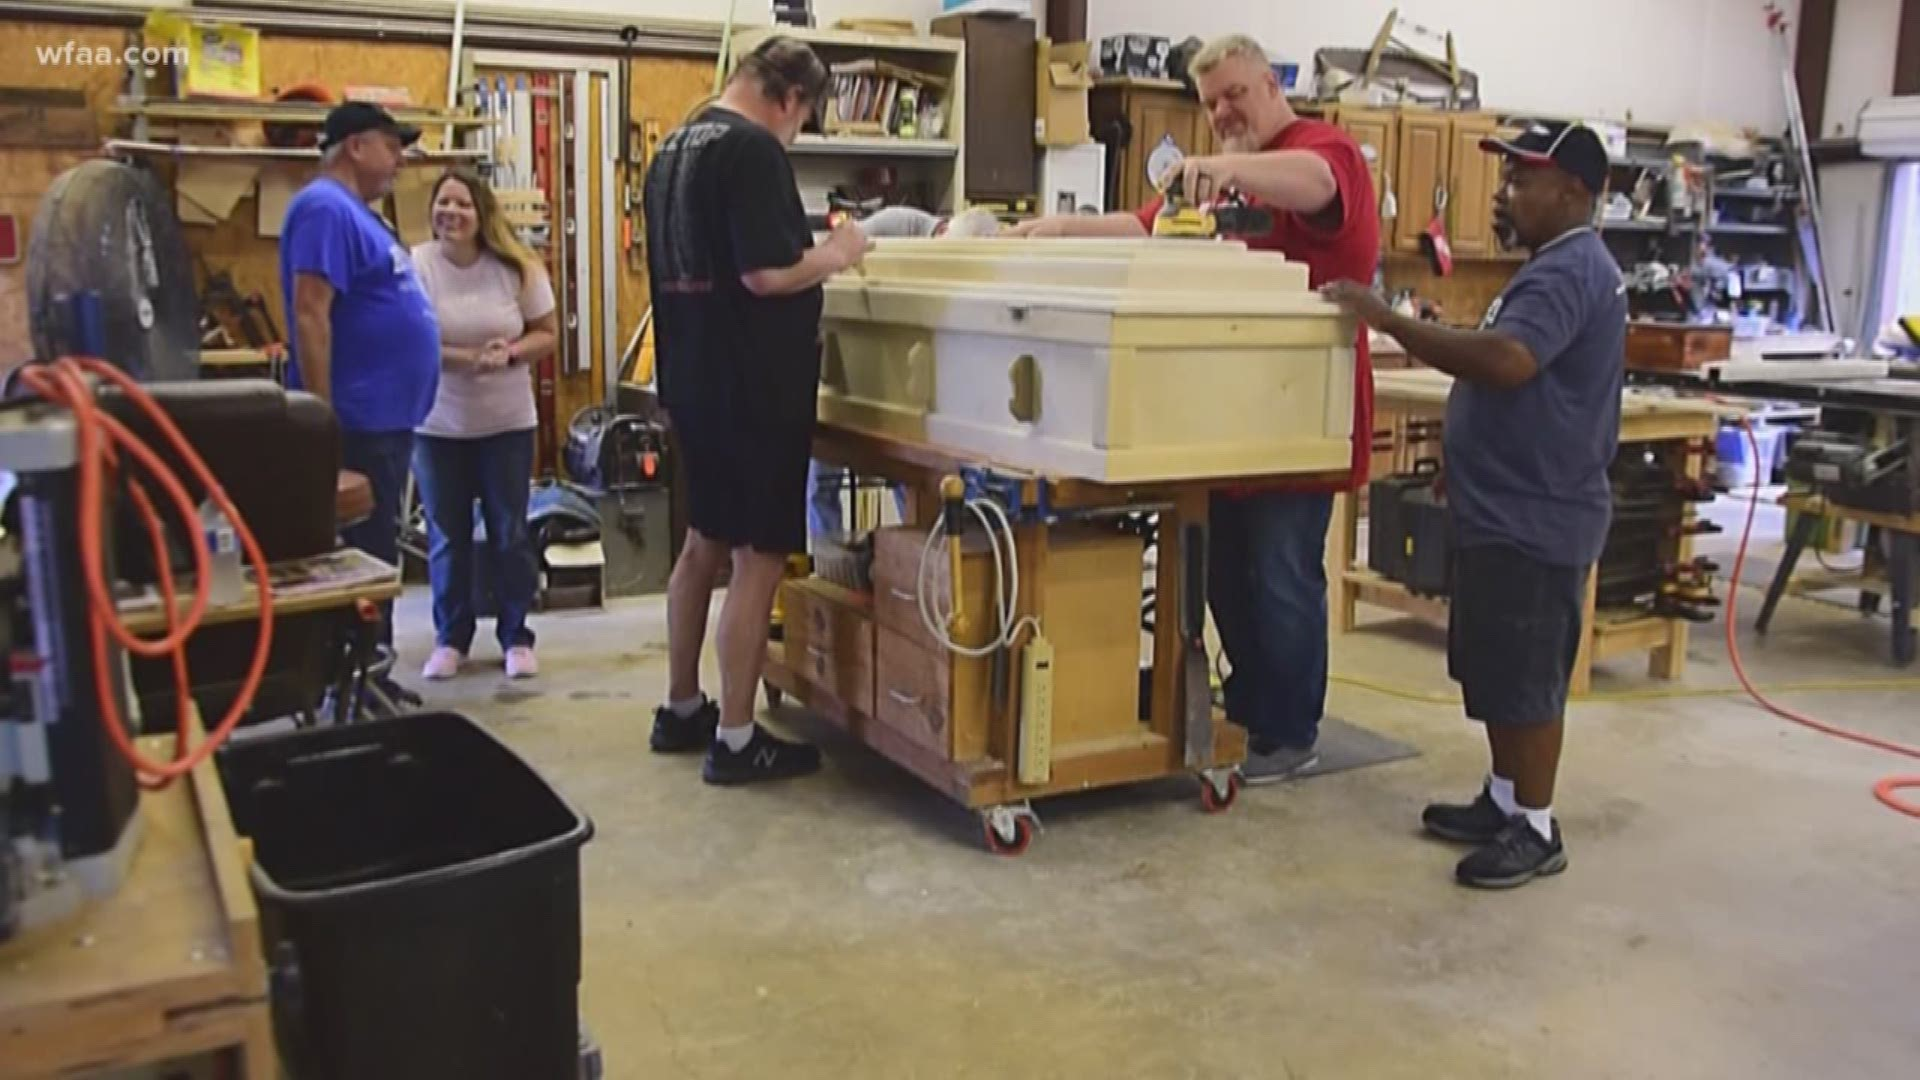 Tgi Texas Meet The Woodworking Group Providing Light In Dark Times As Angels On Earth Wfaa Com